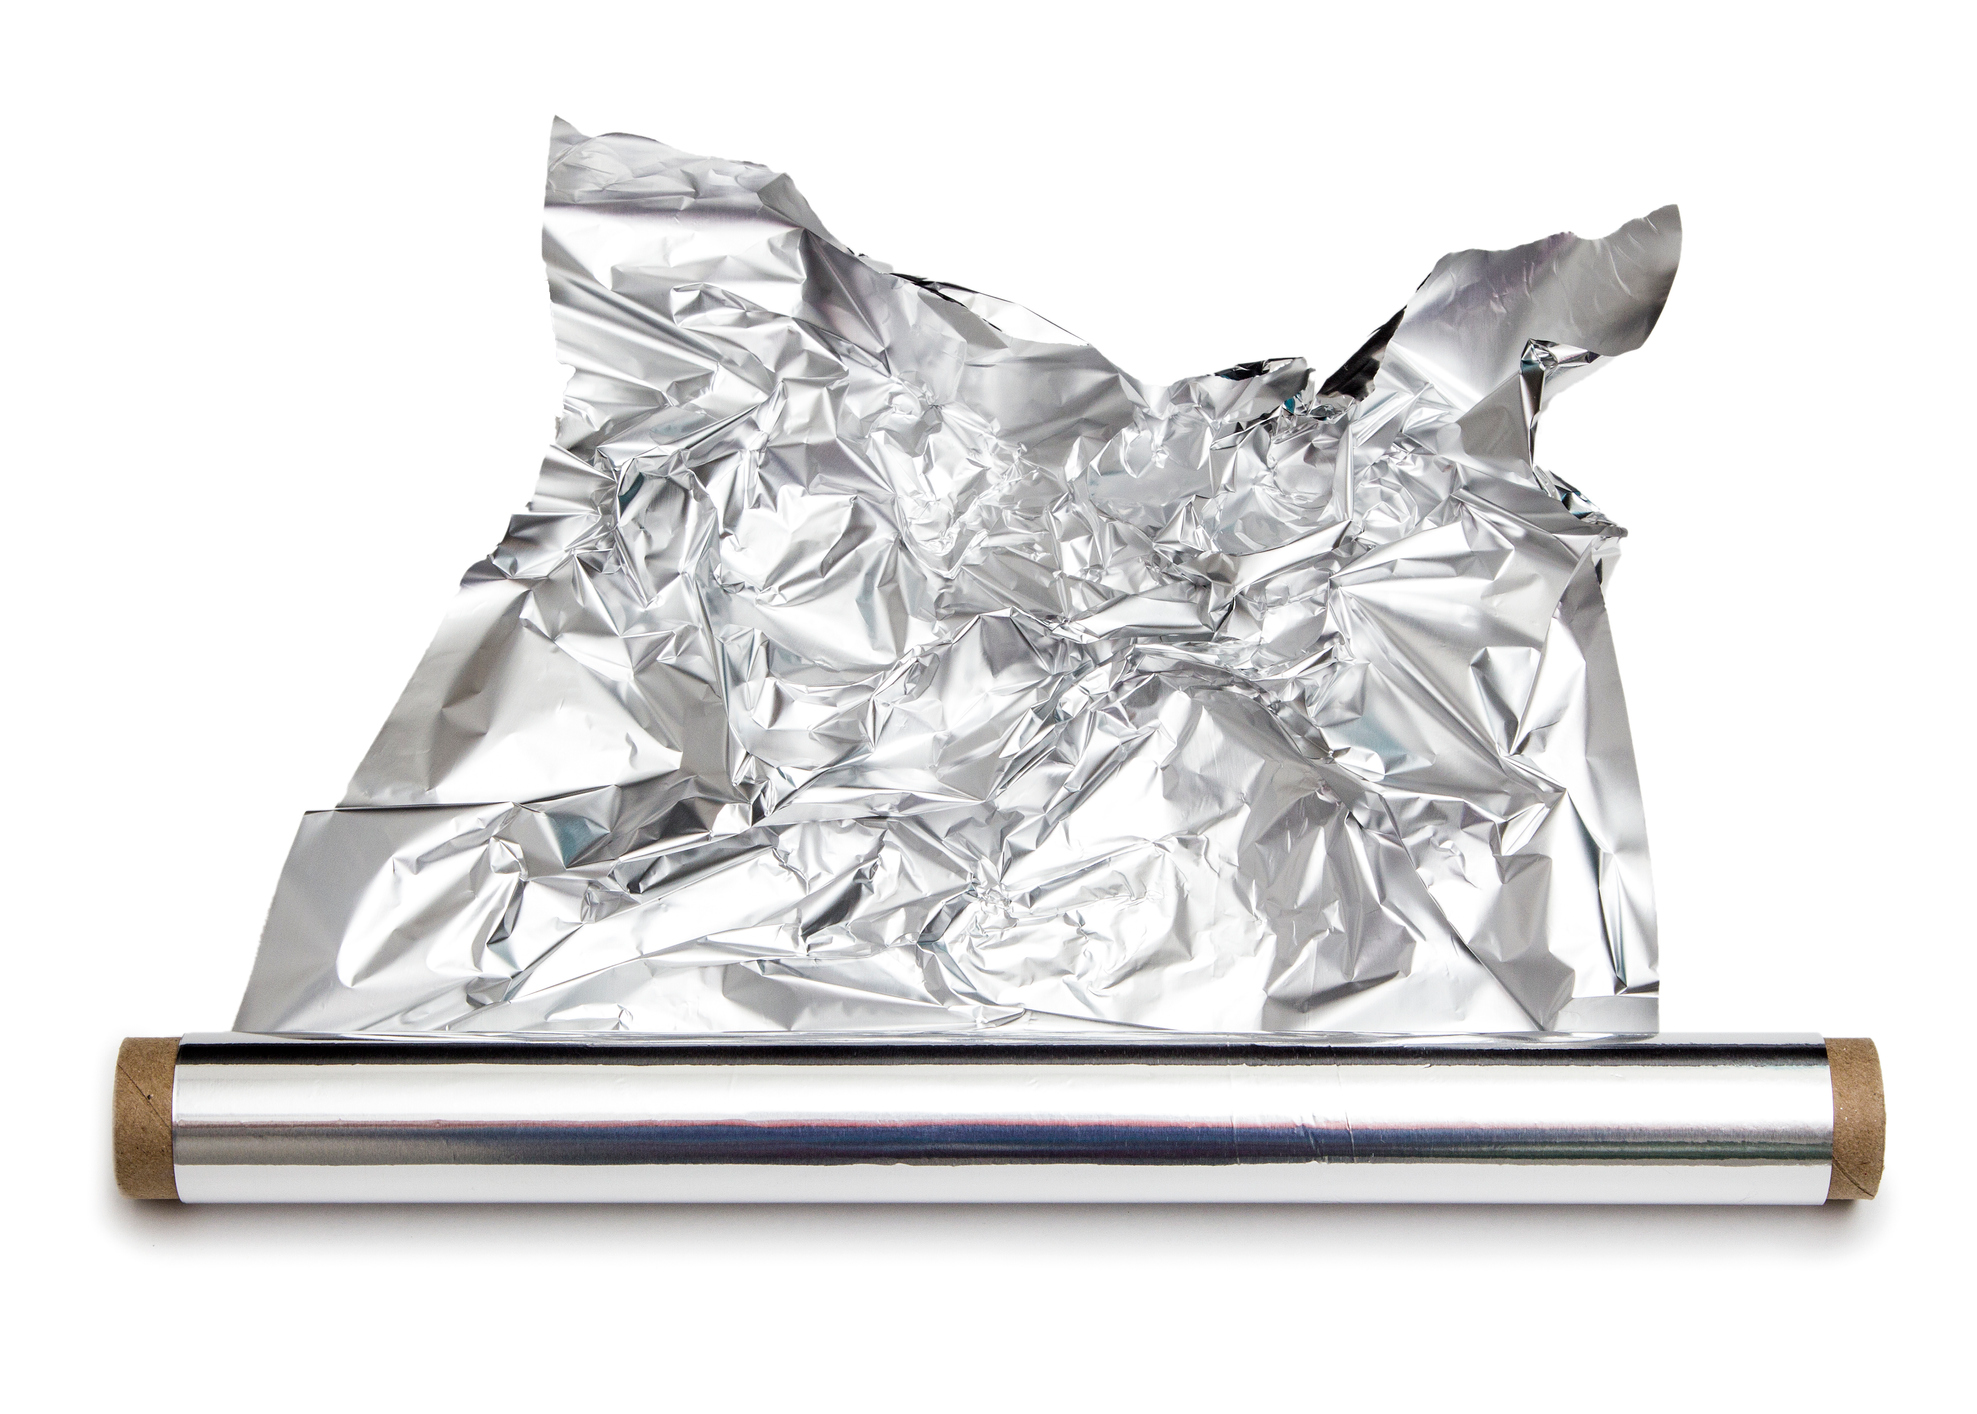 5 Clever Ways to Use Aluminum Foil to Clean Your Kitchen